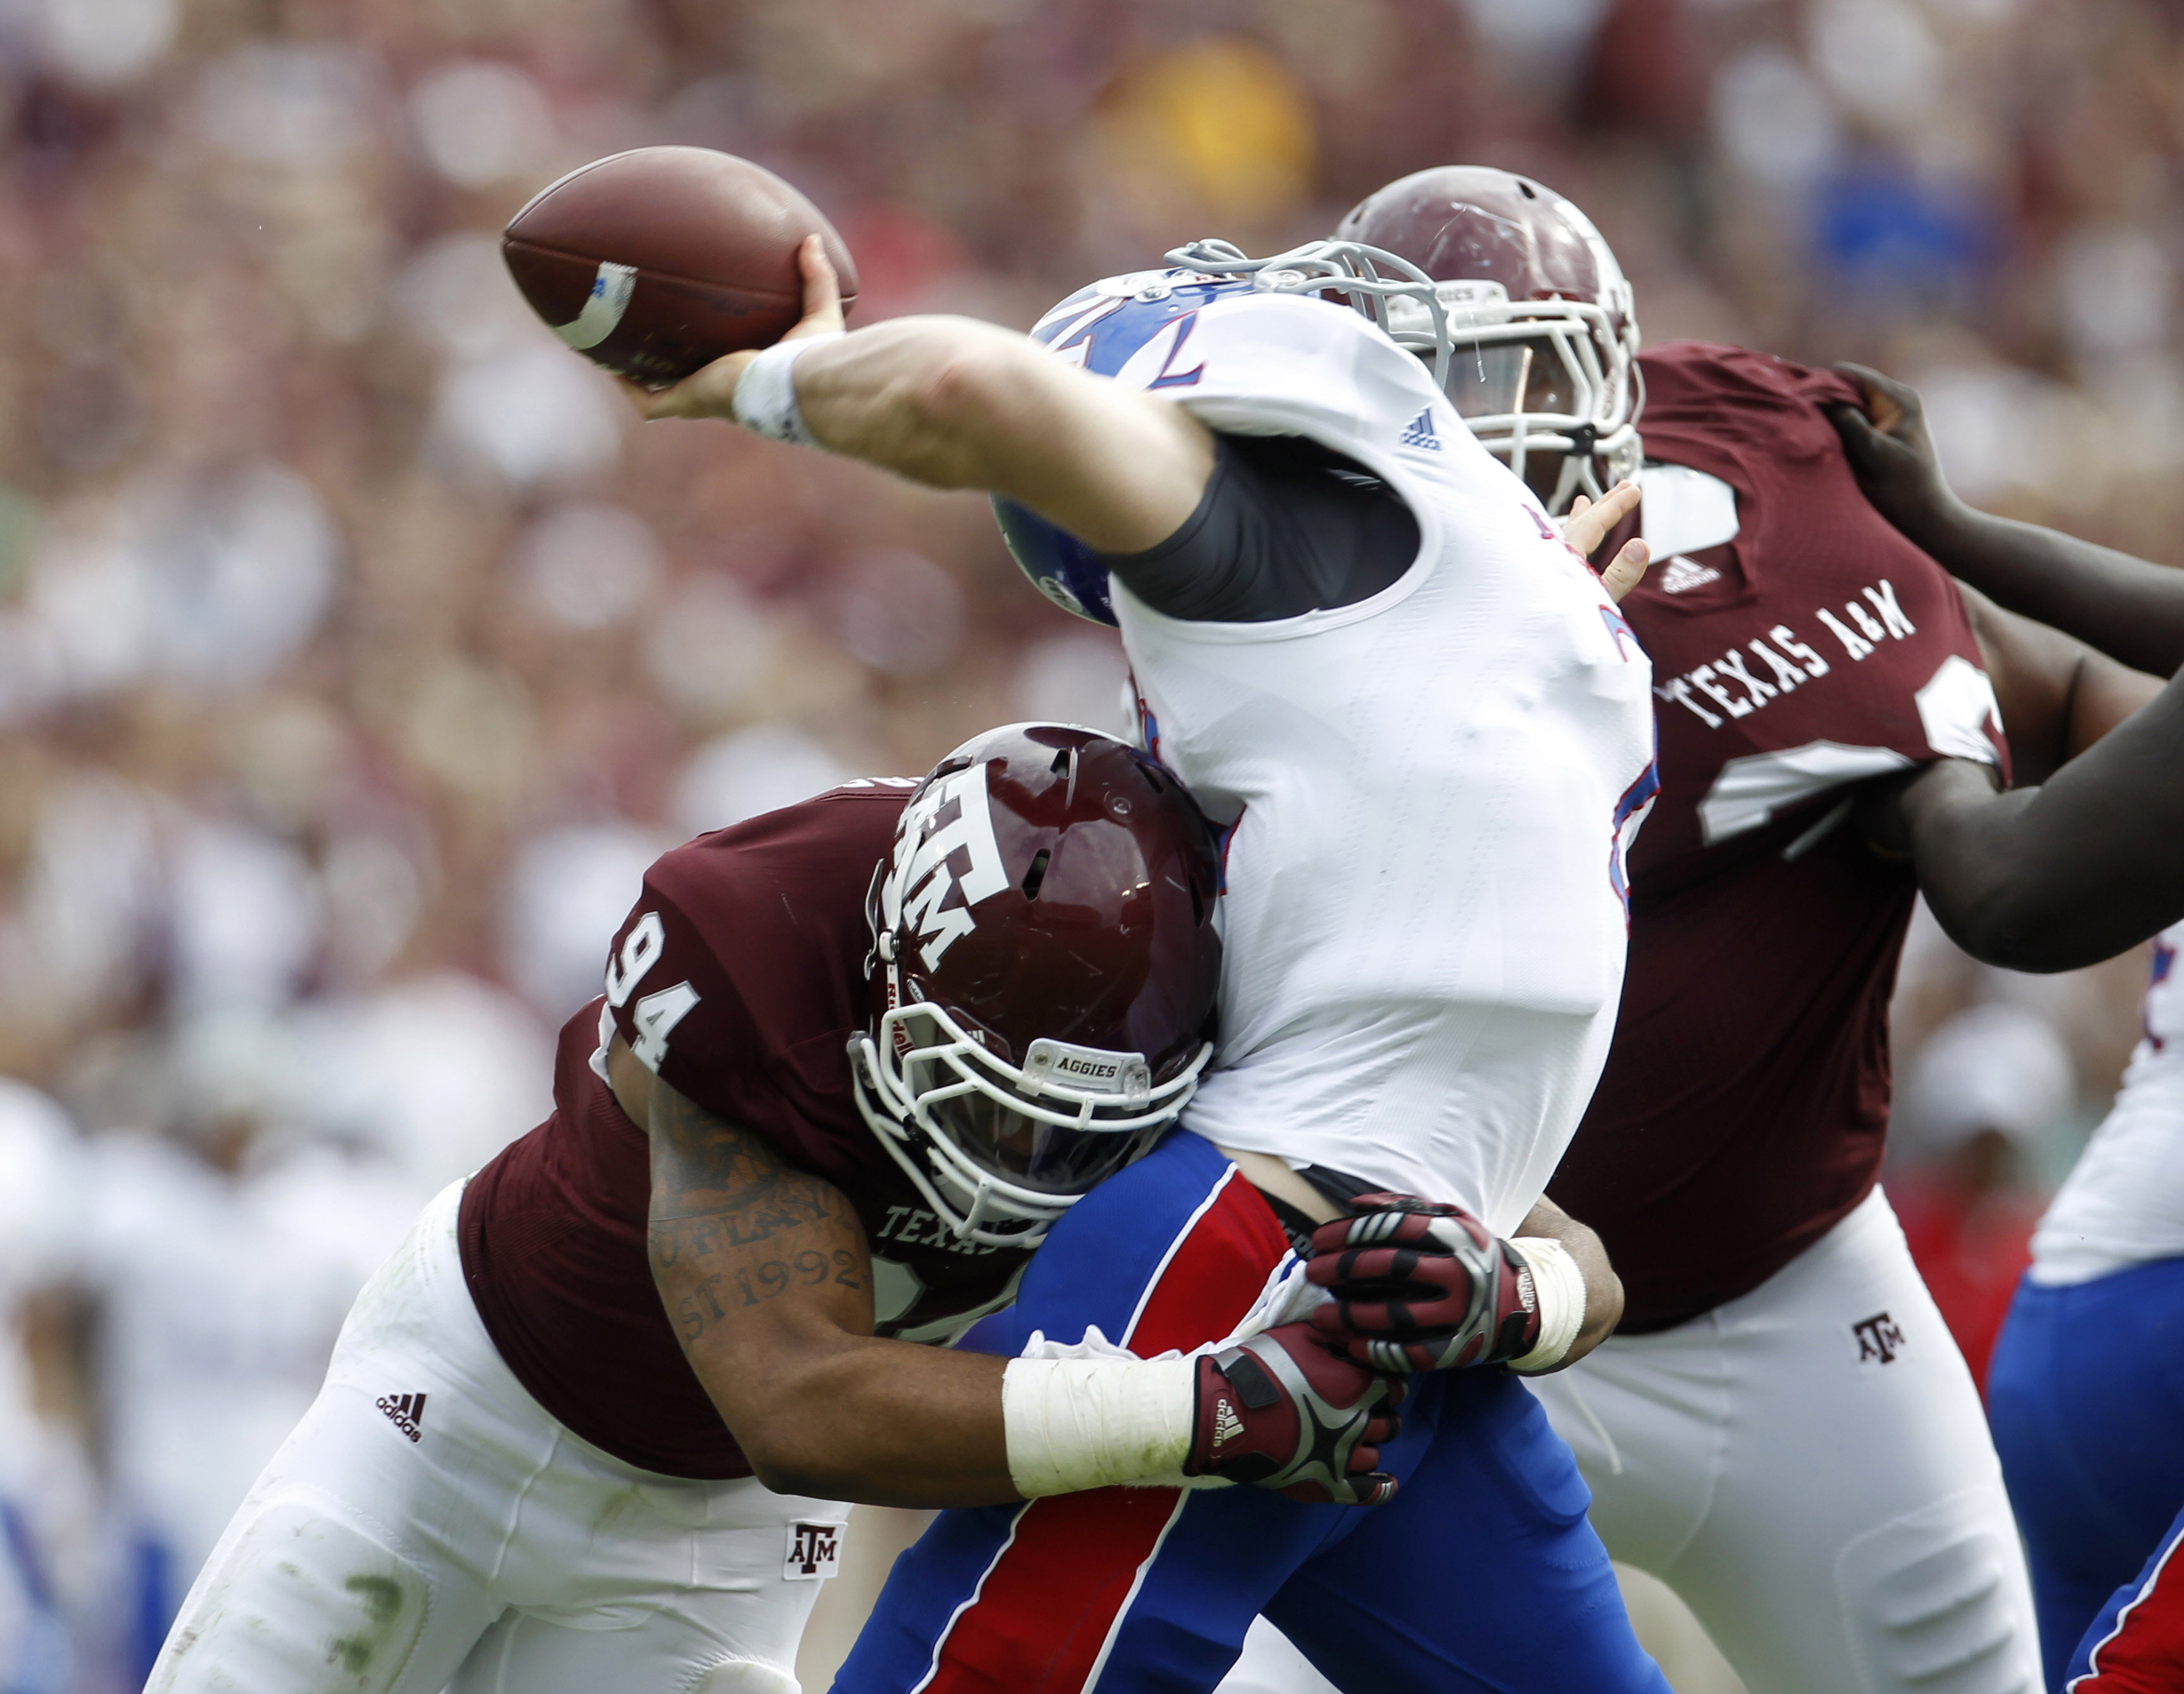 Damontre Moore's pass-rushing ability will be key for A&M. (AP/Houston Chronicle)